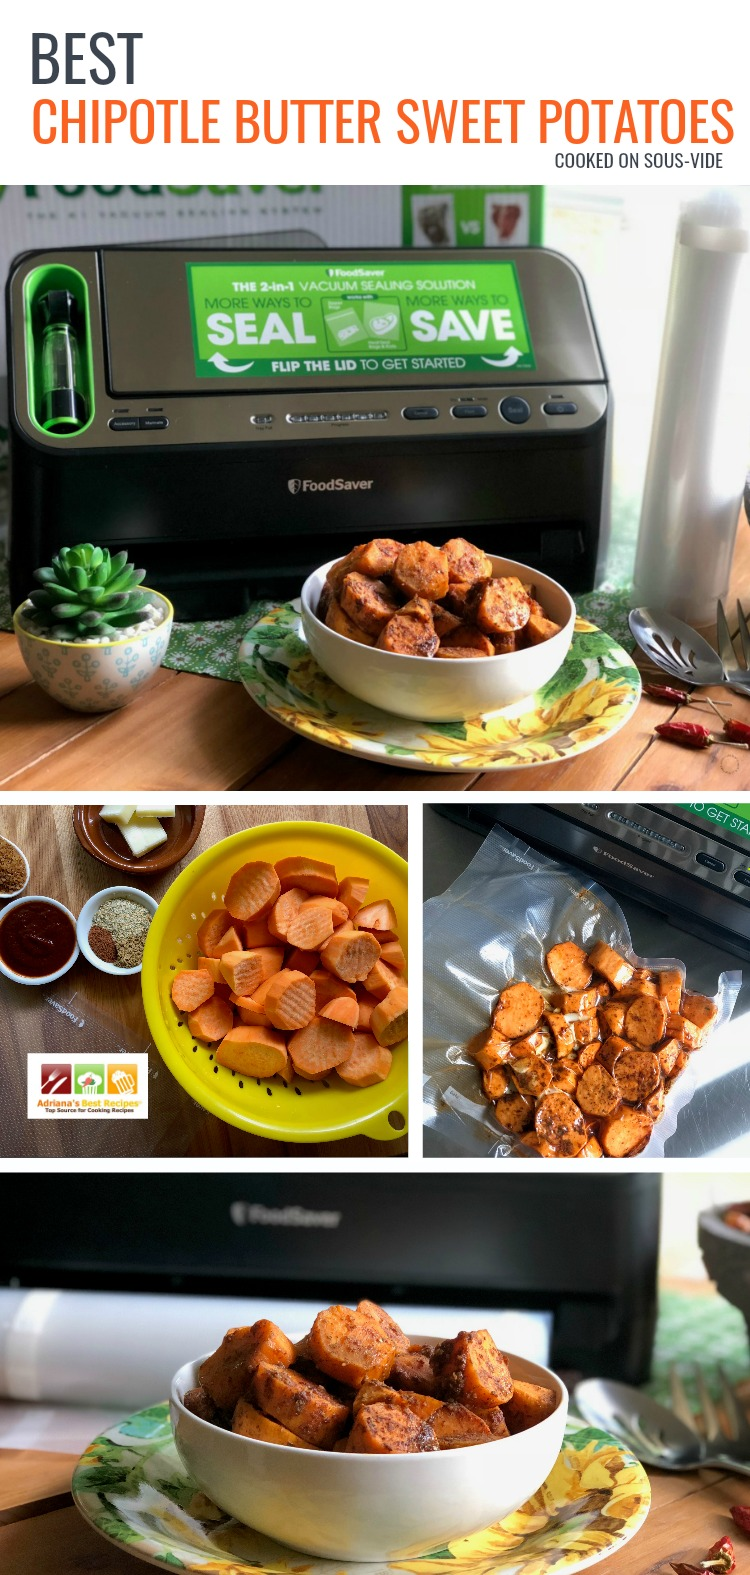 Best Chipotle Butter Sweet Potatoes cooked to perfection on Sous-Vide and seasoned with butter, turbinado sugar, chipotle sauce, cumin, cinnamon and latino seasoning mix.